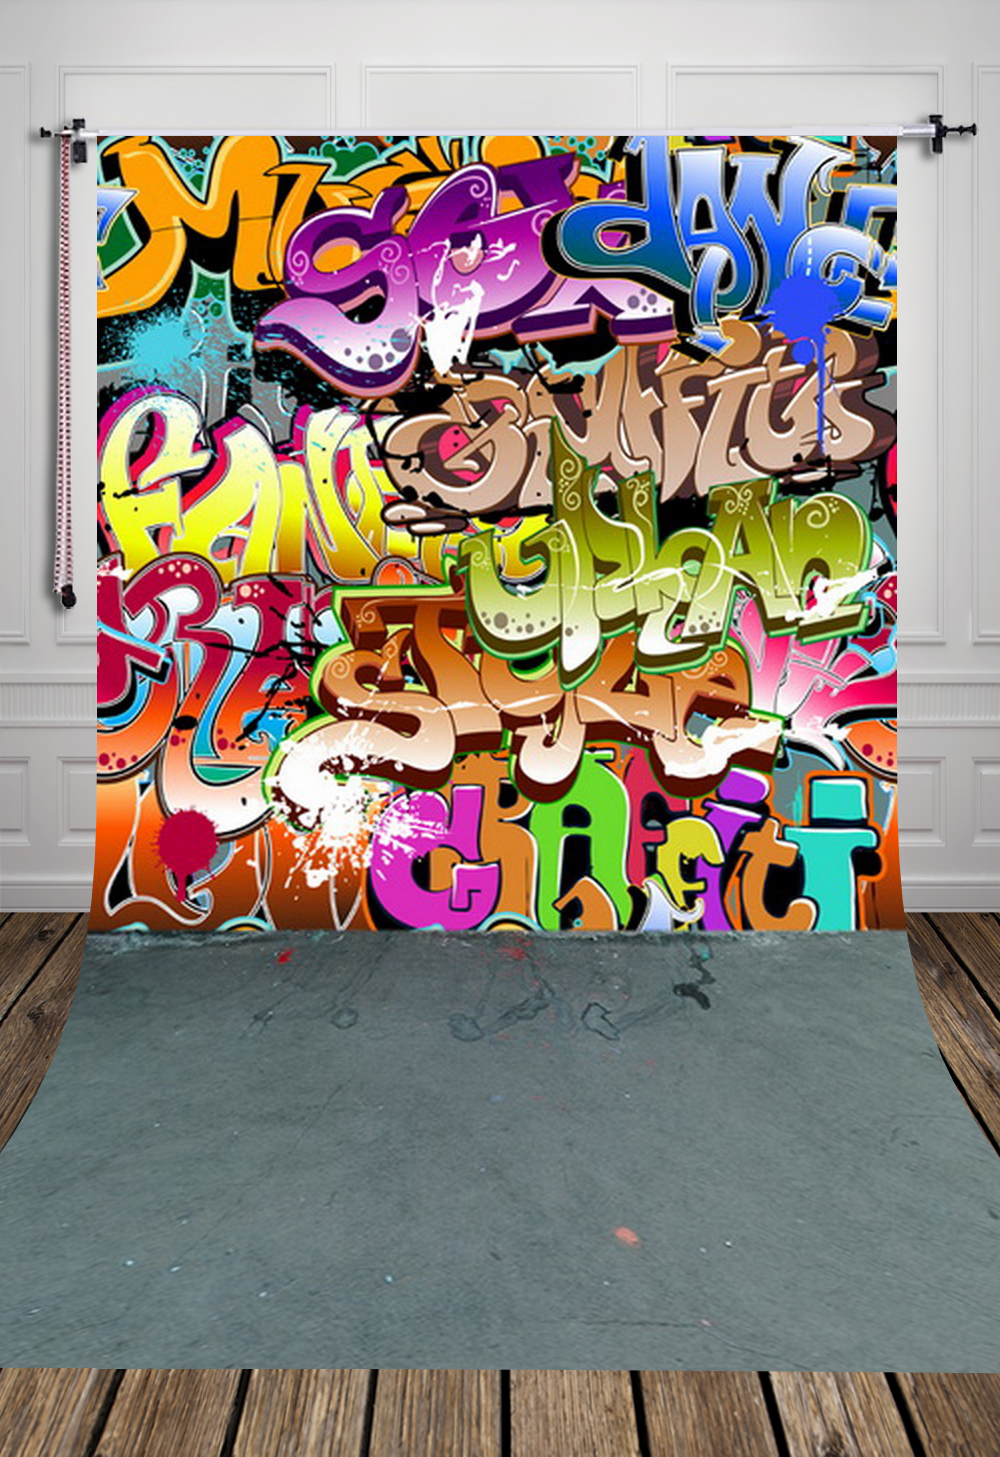 Background image 7975 - Huayi Graffiti Wall Backdrop Photography Background Fabric Newborn Backdrop Children Photography Props Photo Studio D 7975 In Background From Consumer